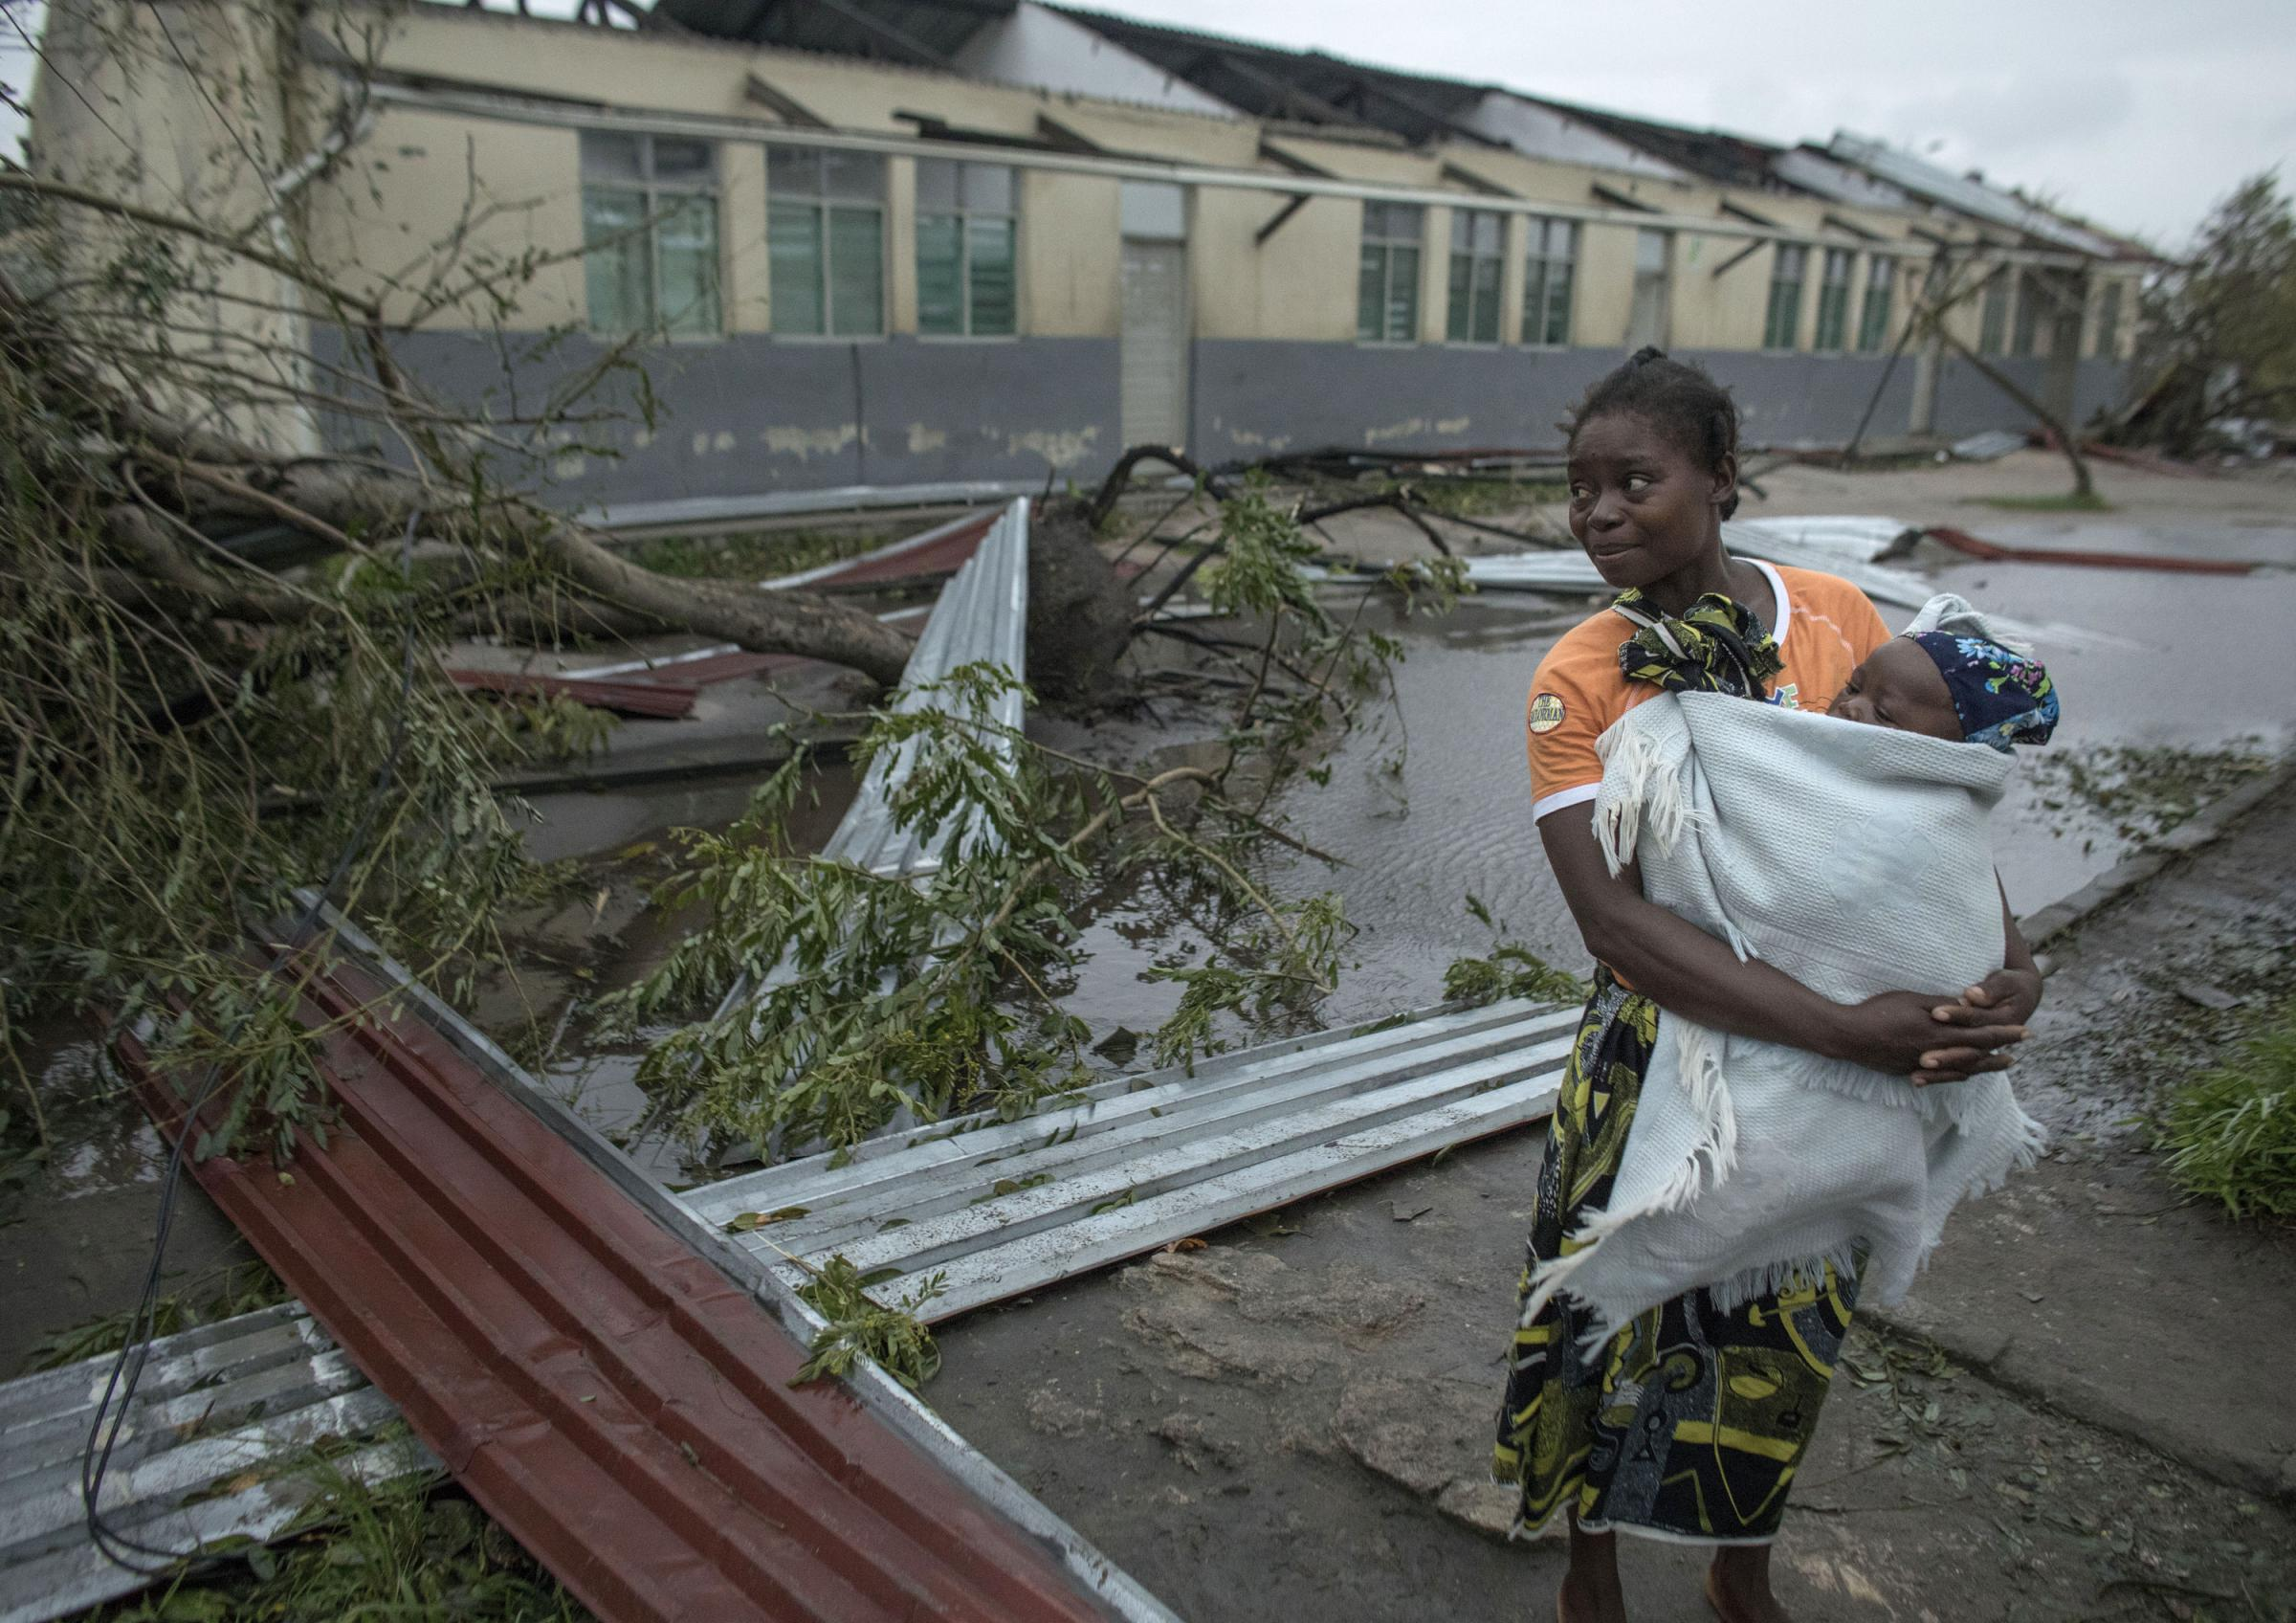 Cyclone winds in Mozambique have left many without homes